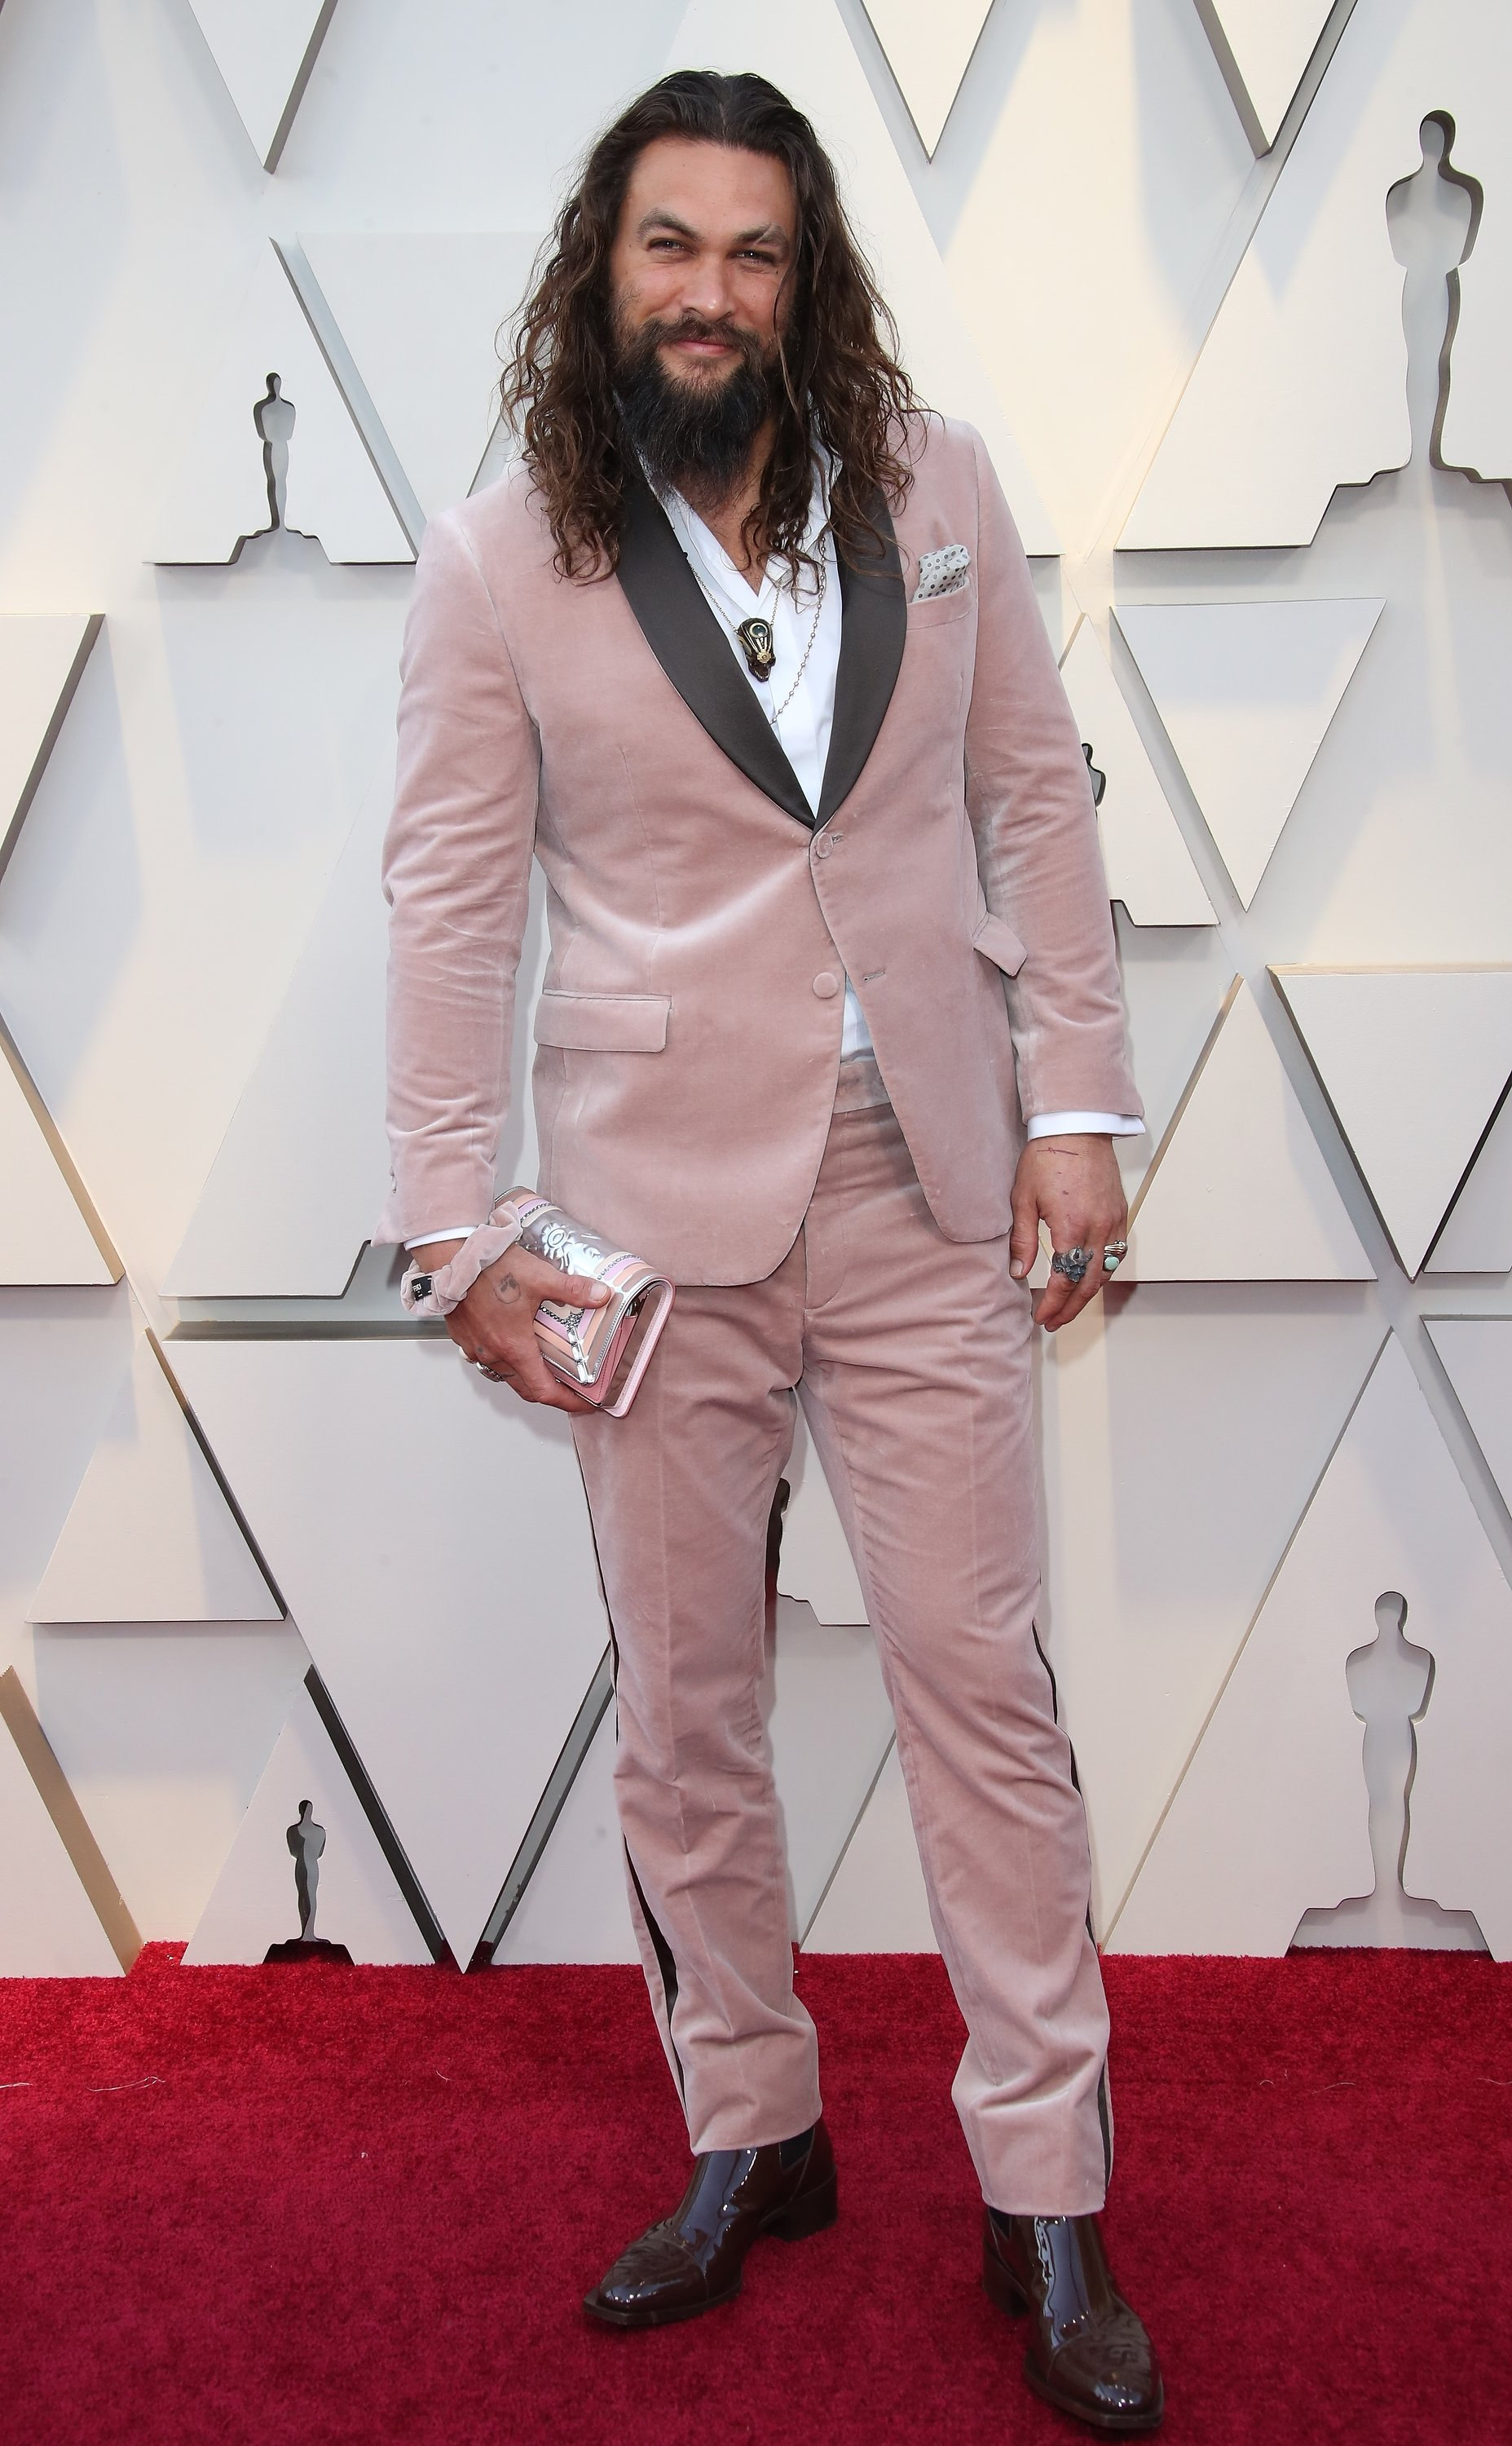 Jason Momoa attends the 2019 Oscars | Photo: Getty Images